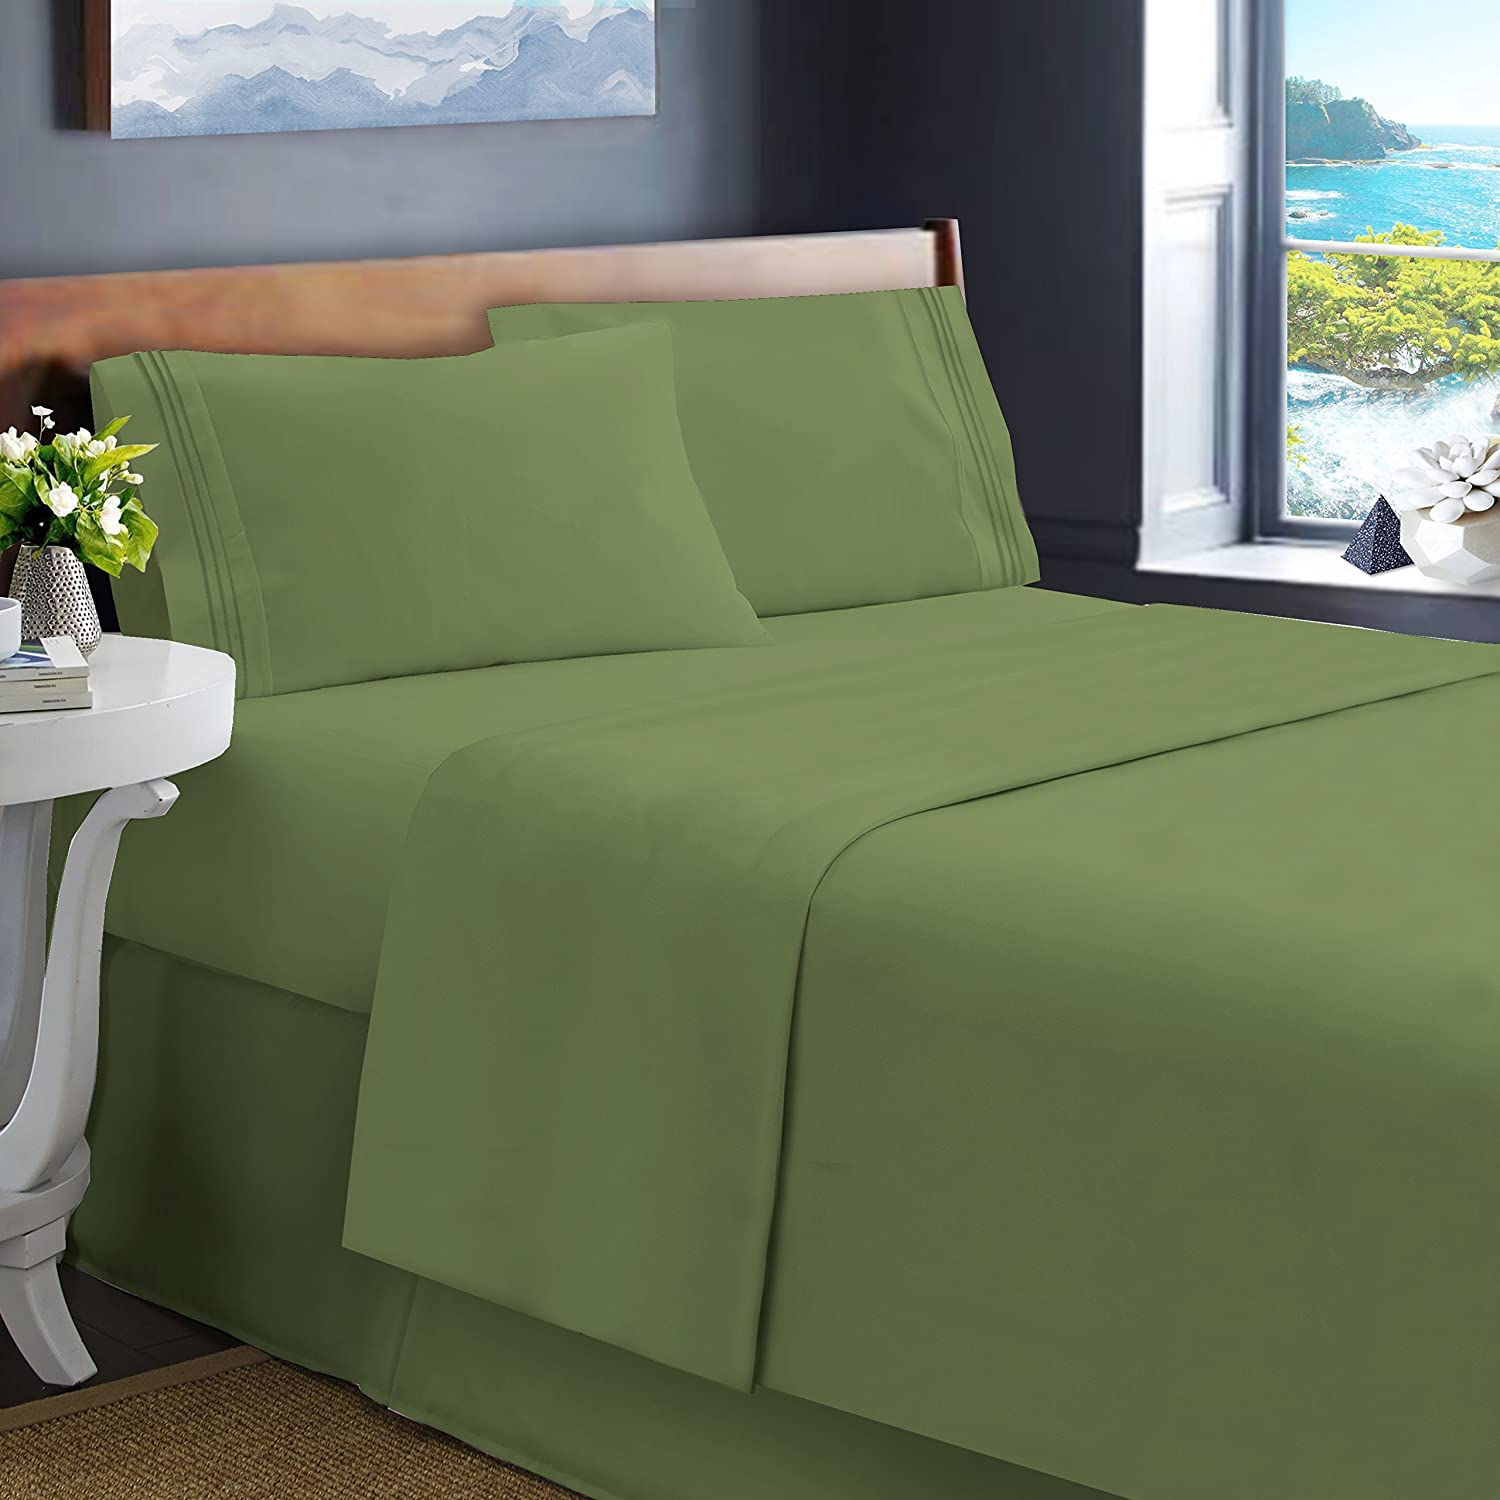 Hearth & Harbor Queen Size Green Bed Sheet